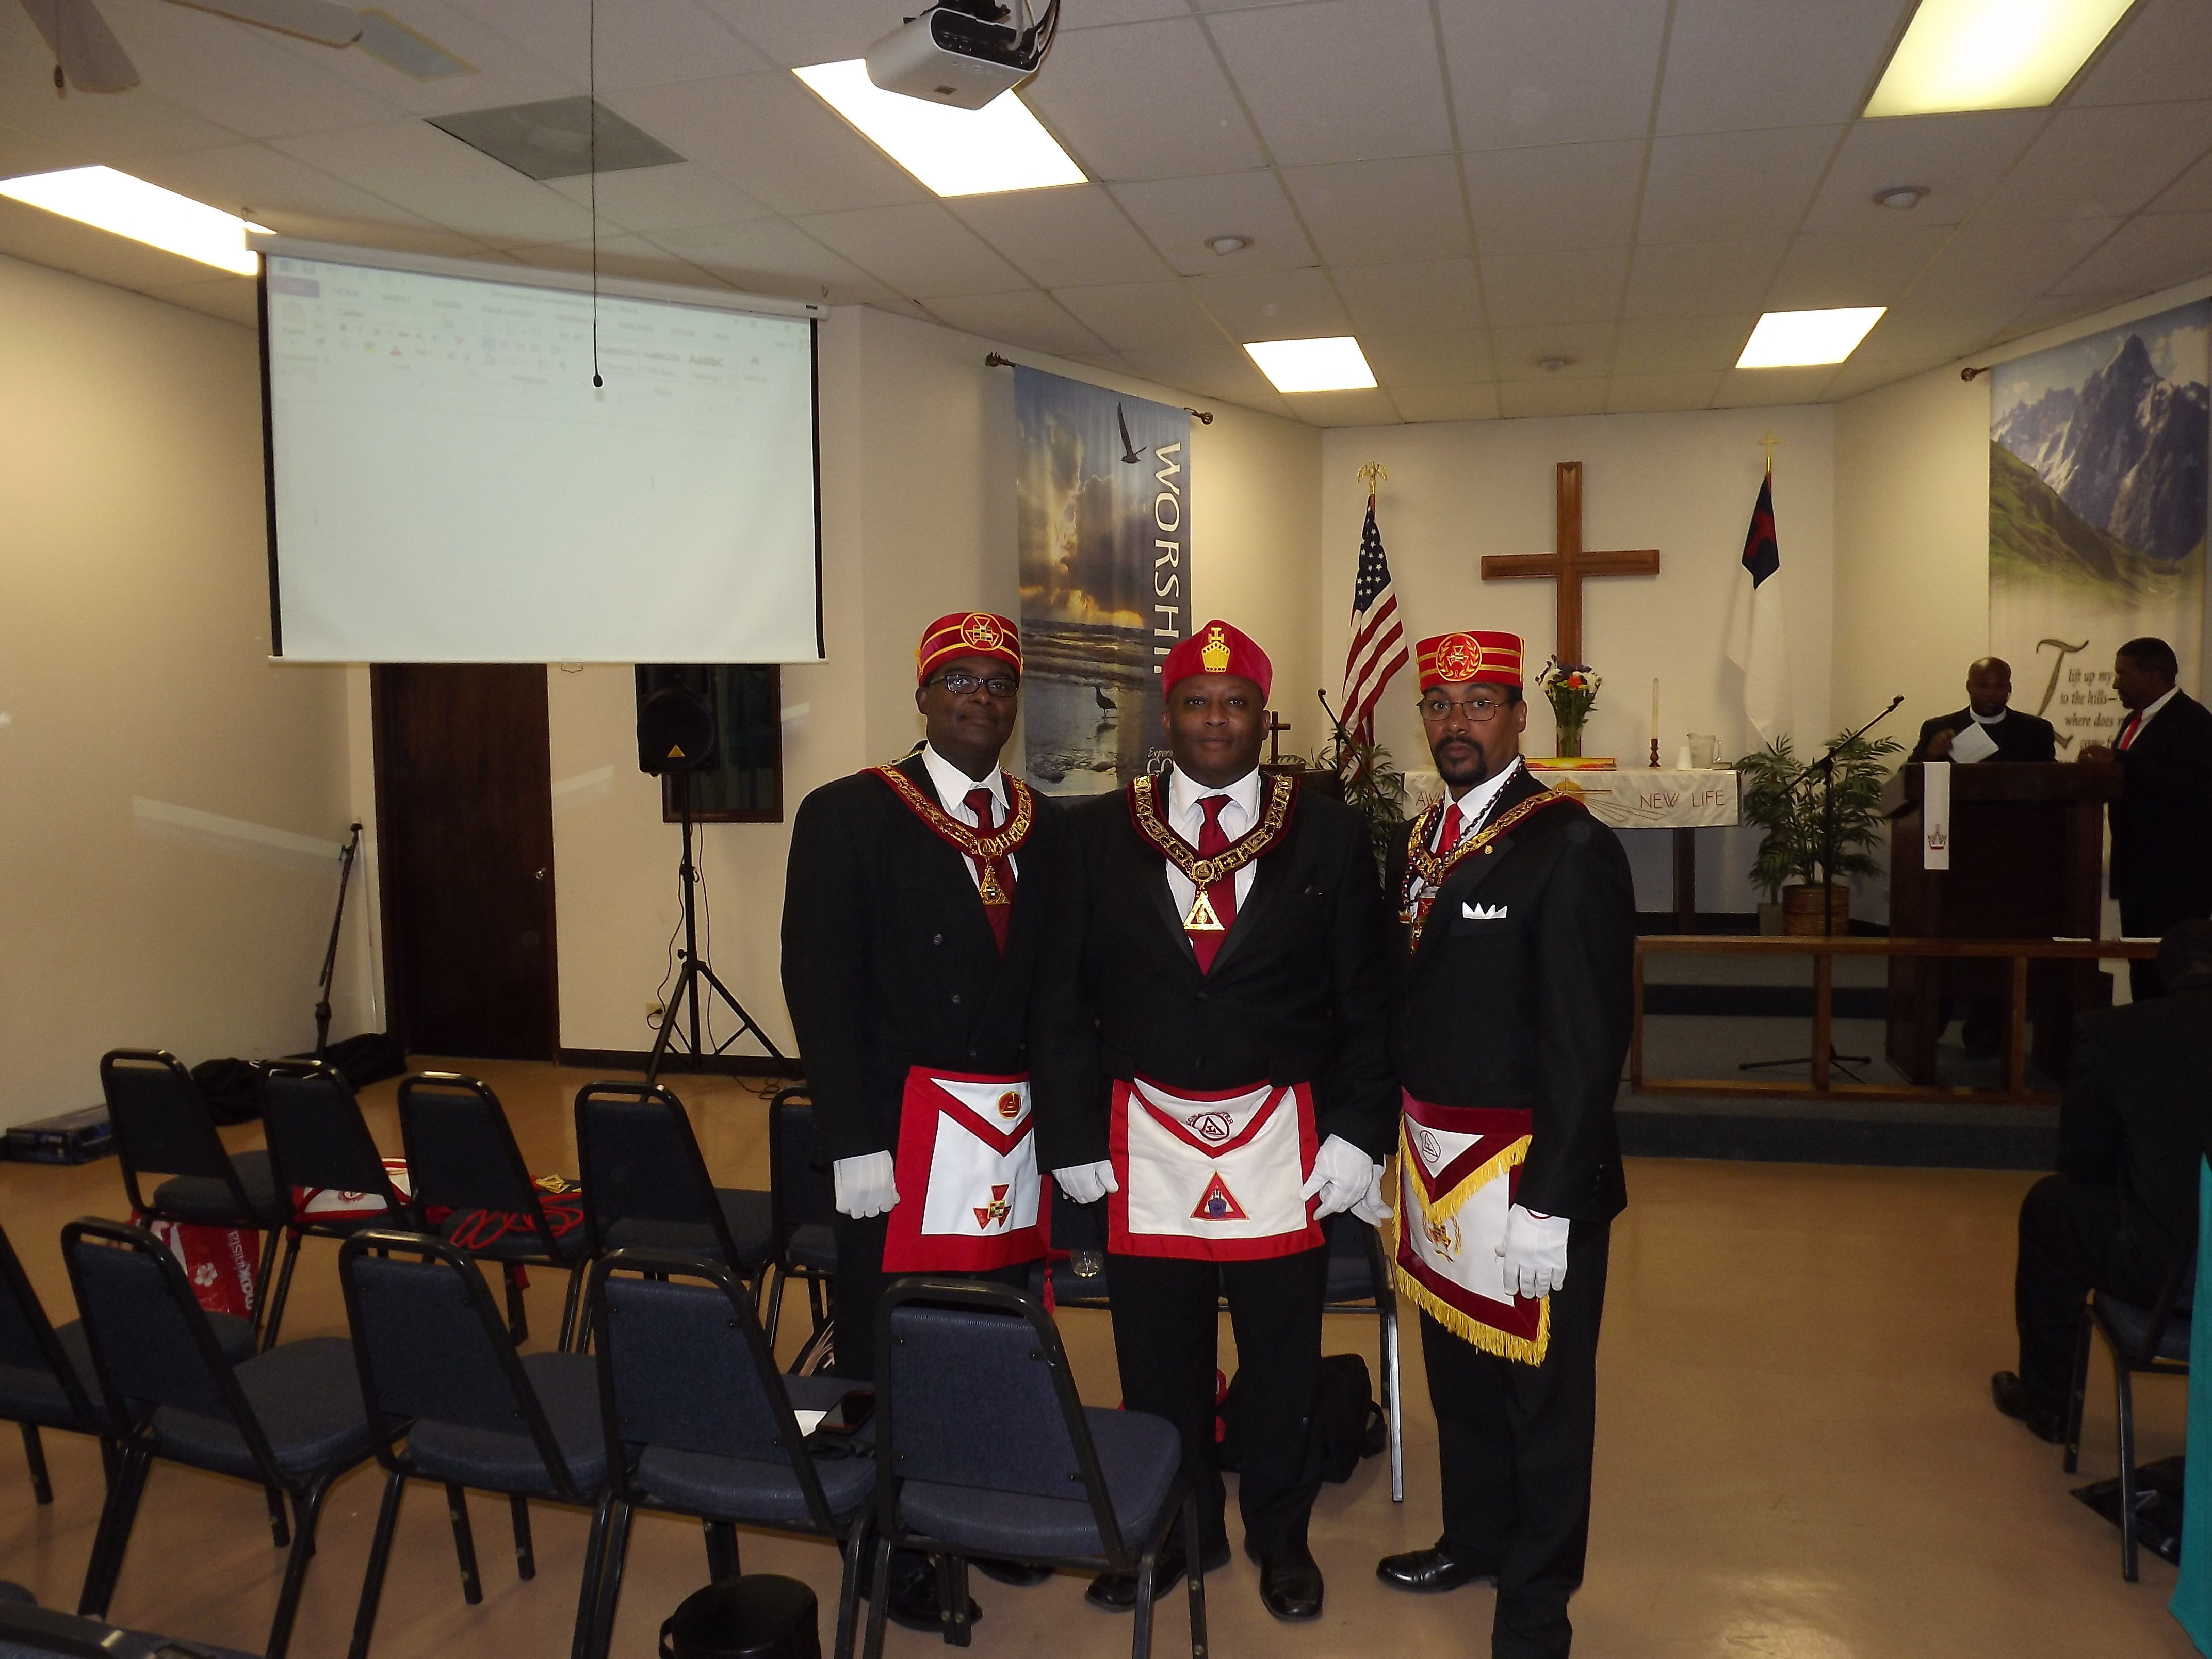 York Rite Hawaii (PHA)